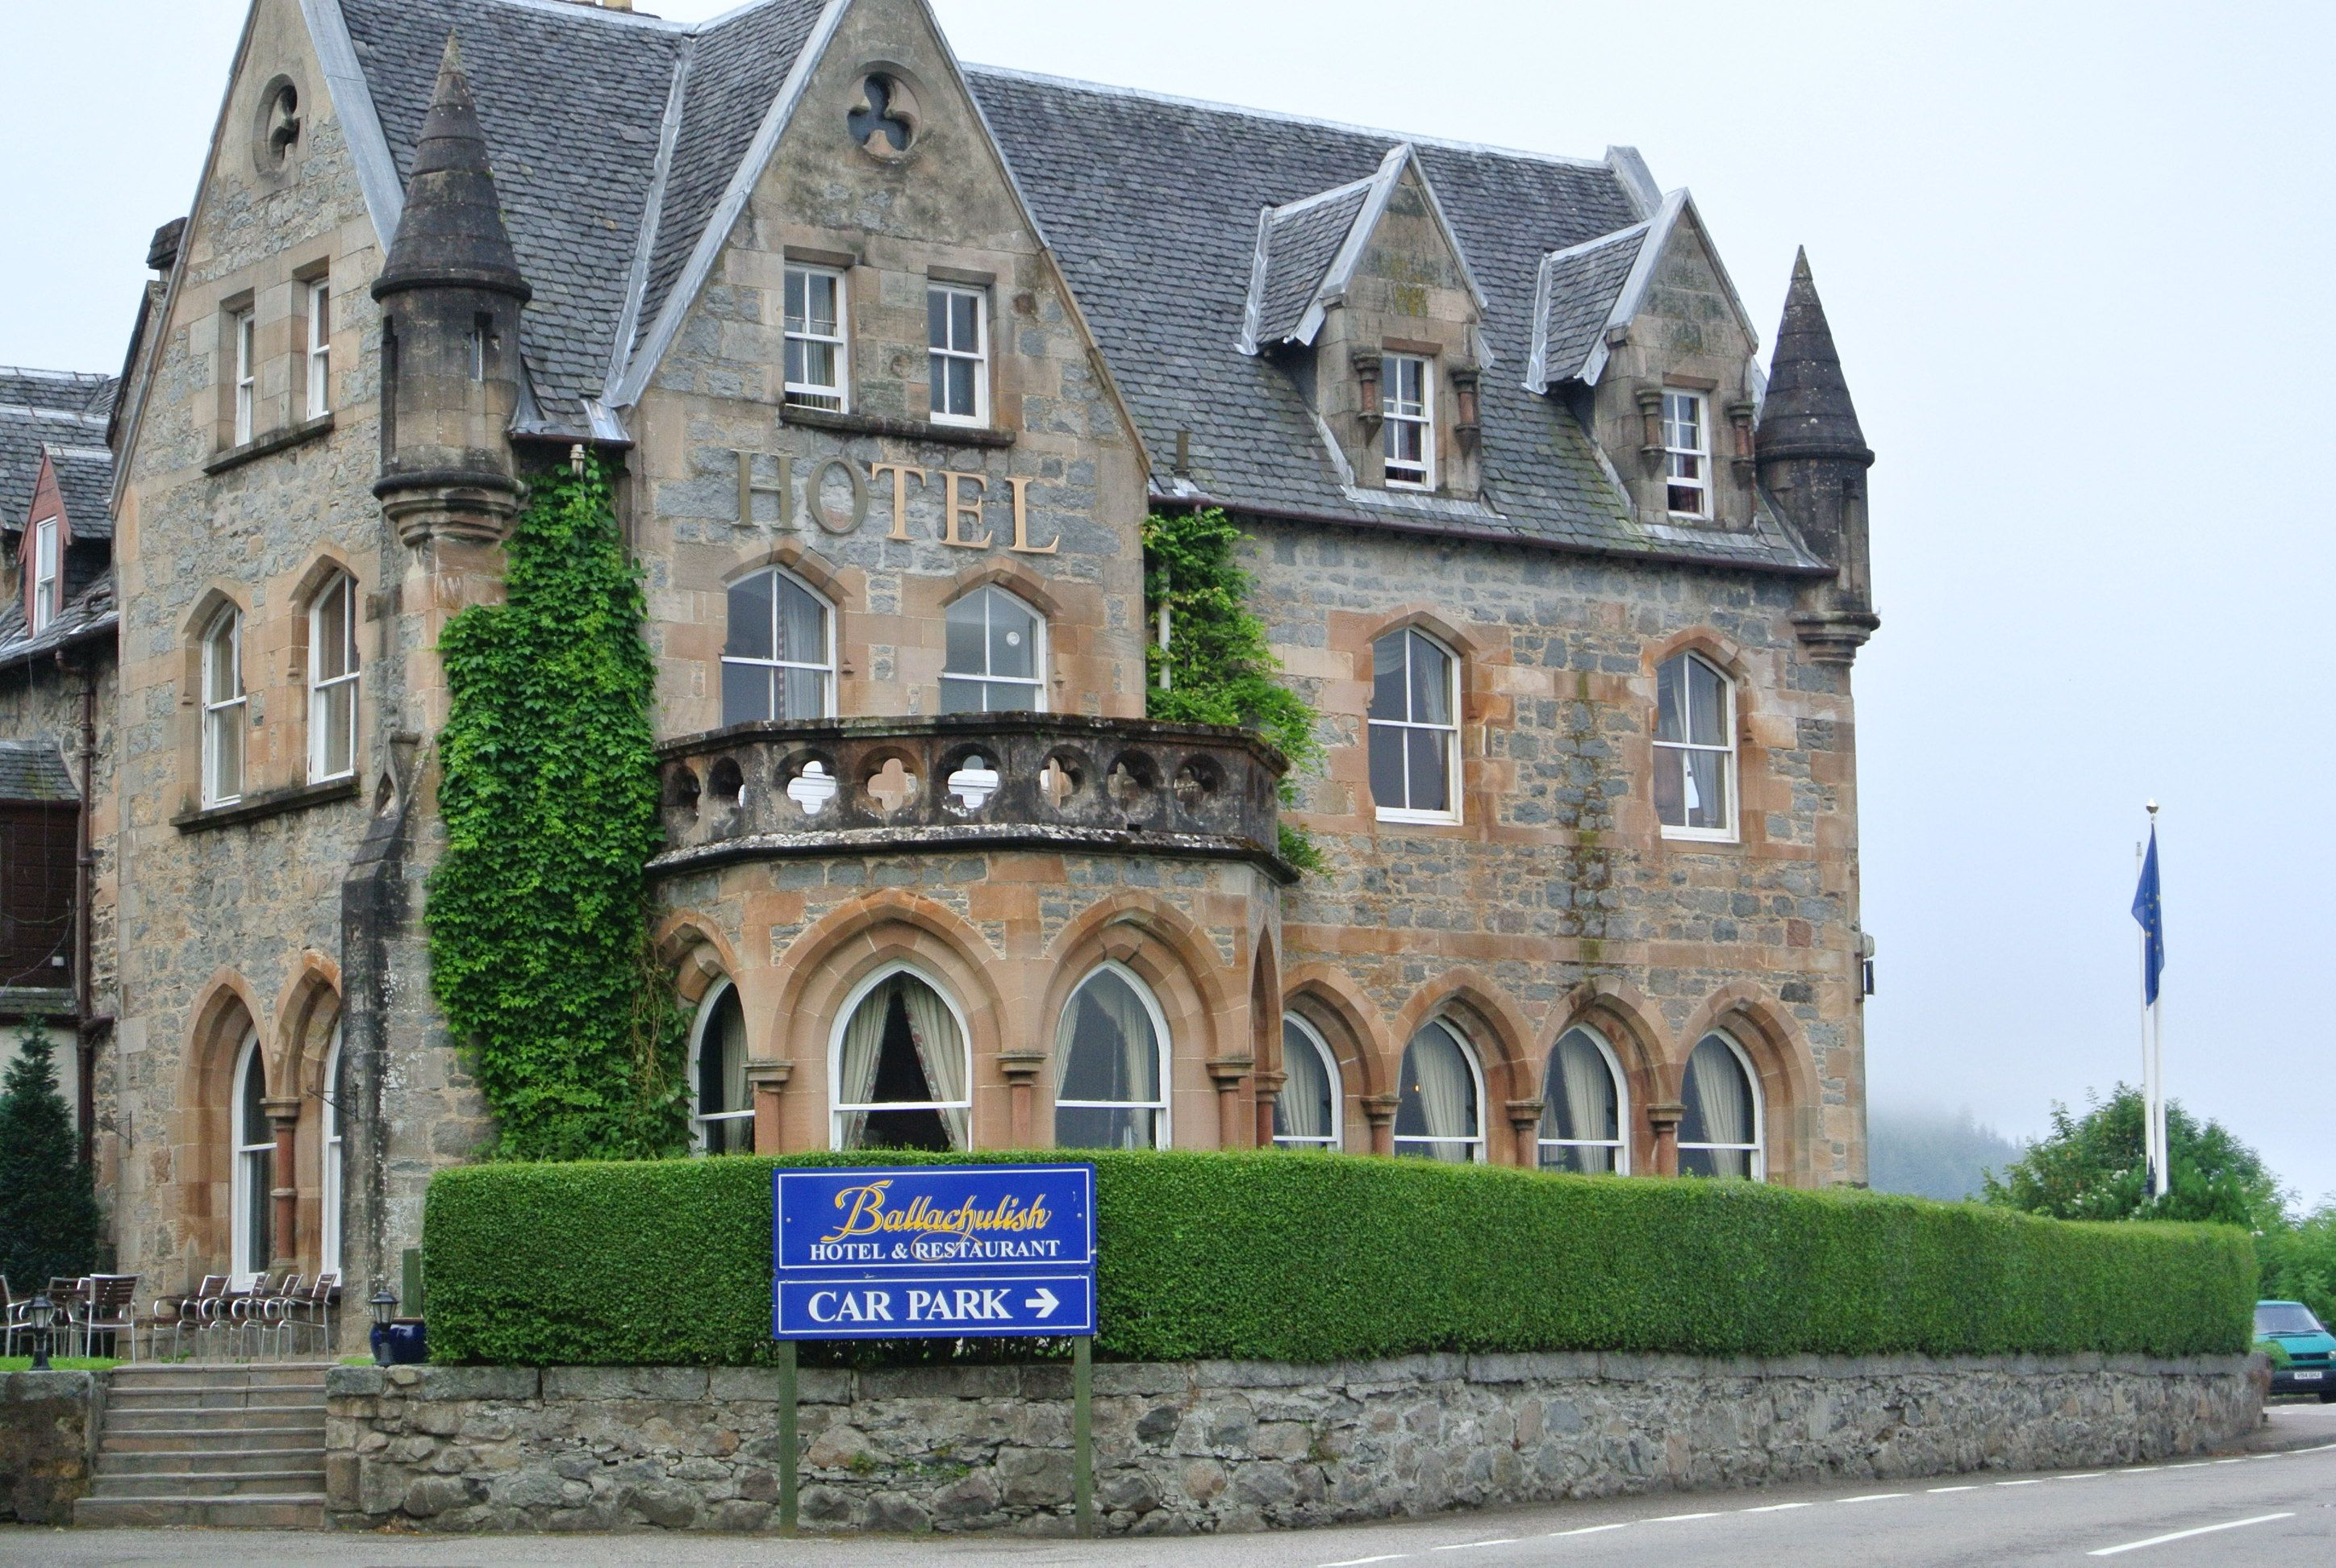 Ballachulish Hotel You Probably Don T Want To Stay Here 4 Haunted Rooms